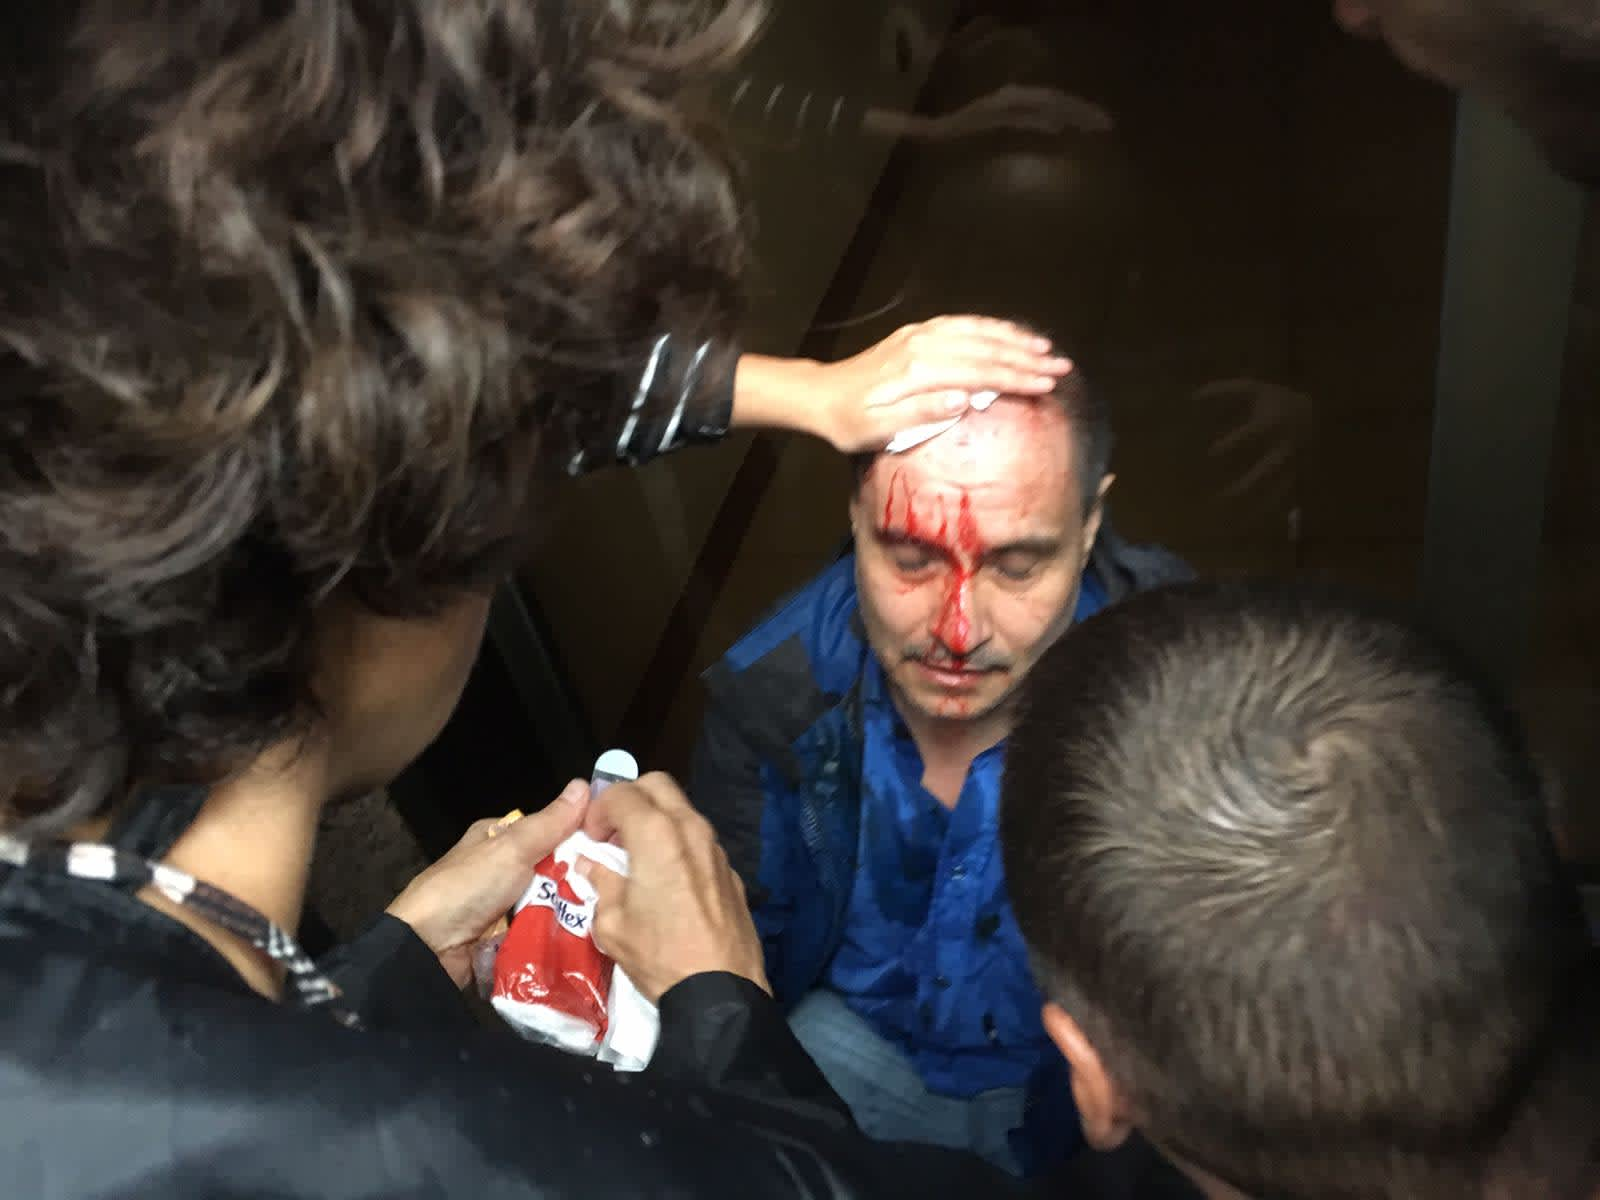 A Catalan man injured by a rubber bullet (credit: MK Ksenia Svetlova)